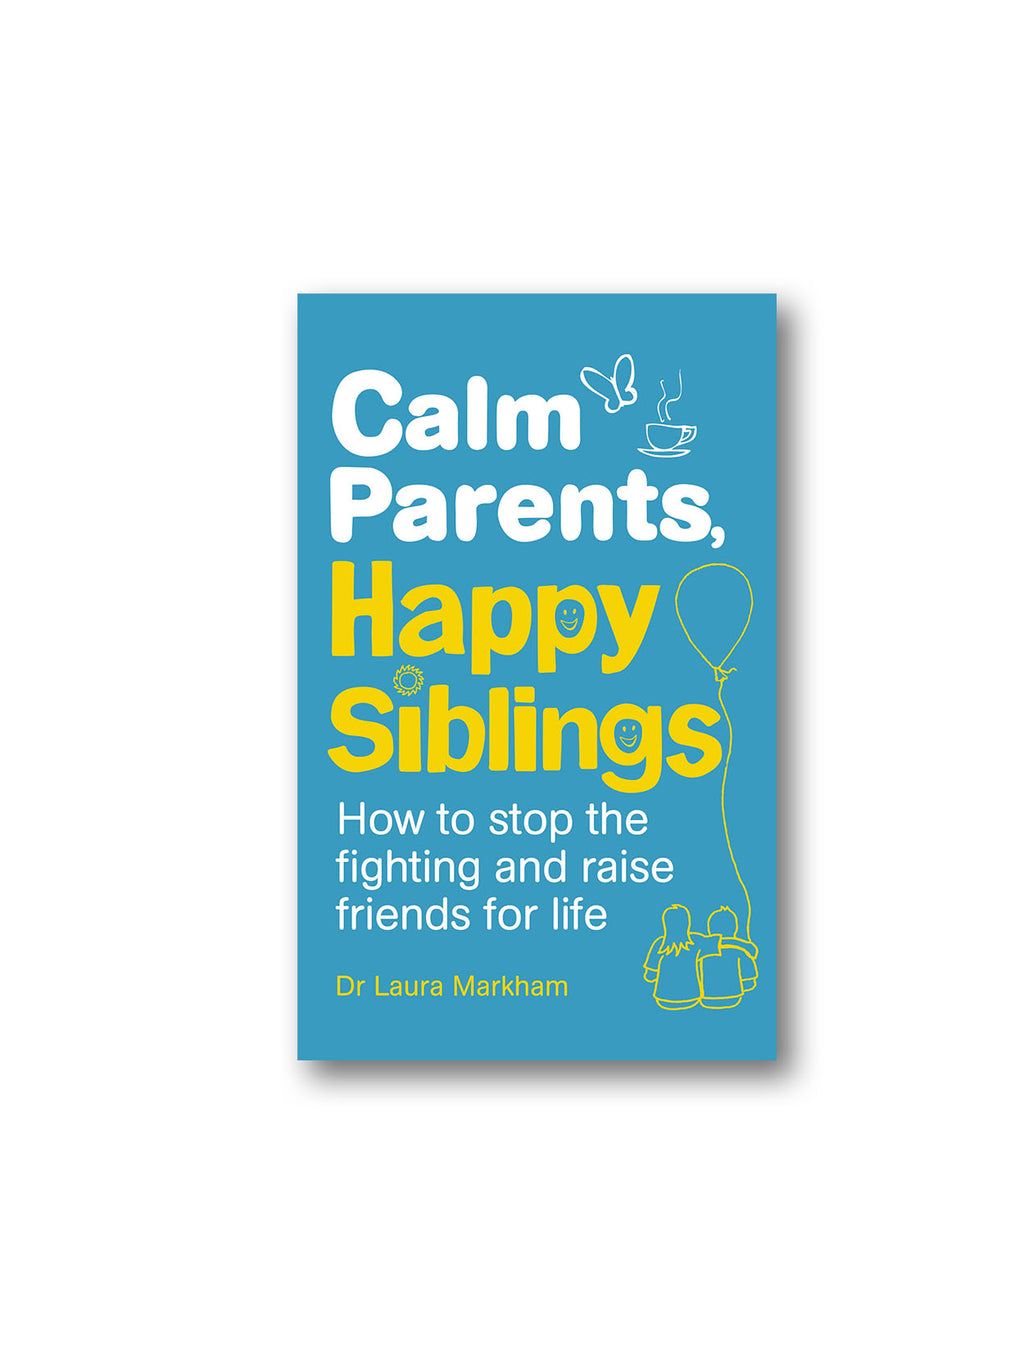 Calm Parents, Happy Siblings : How to stop the fighting and raise friends for life